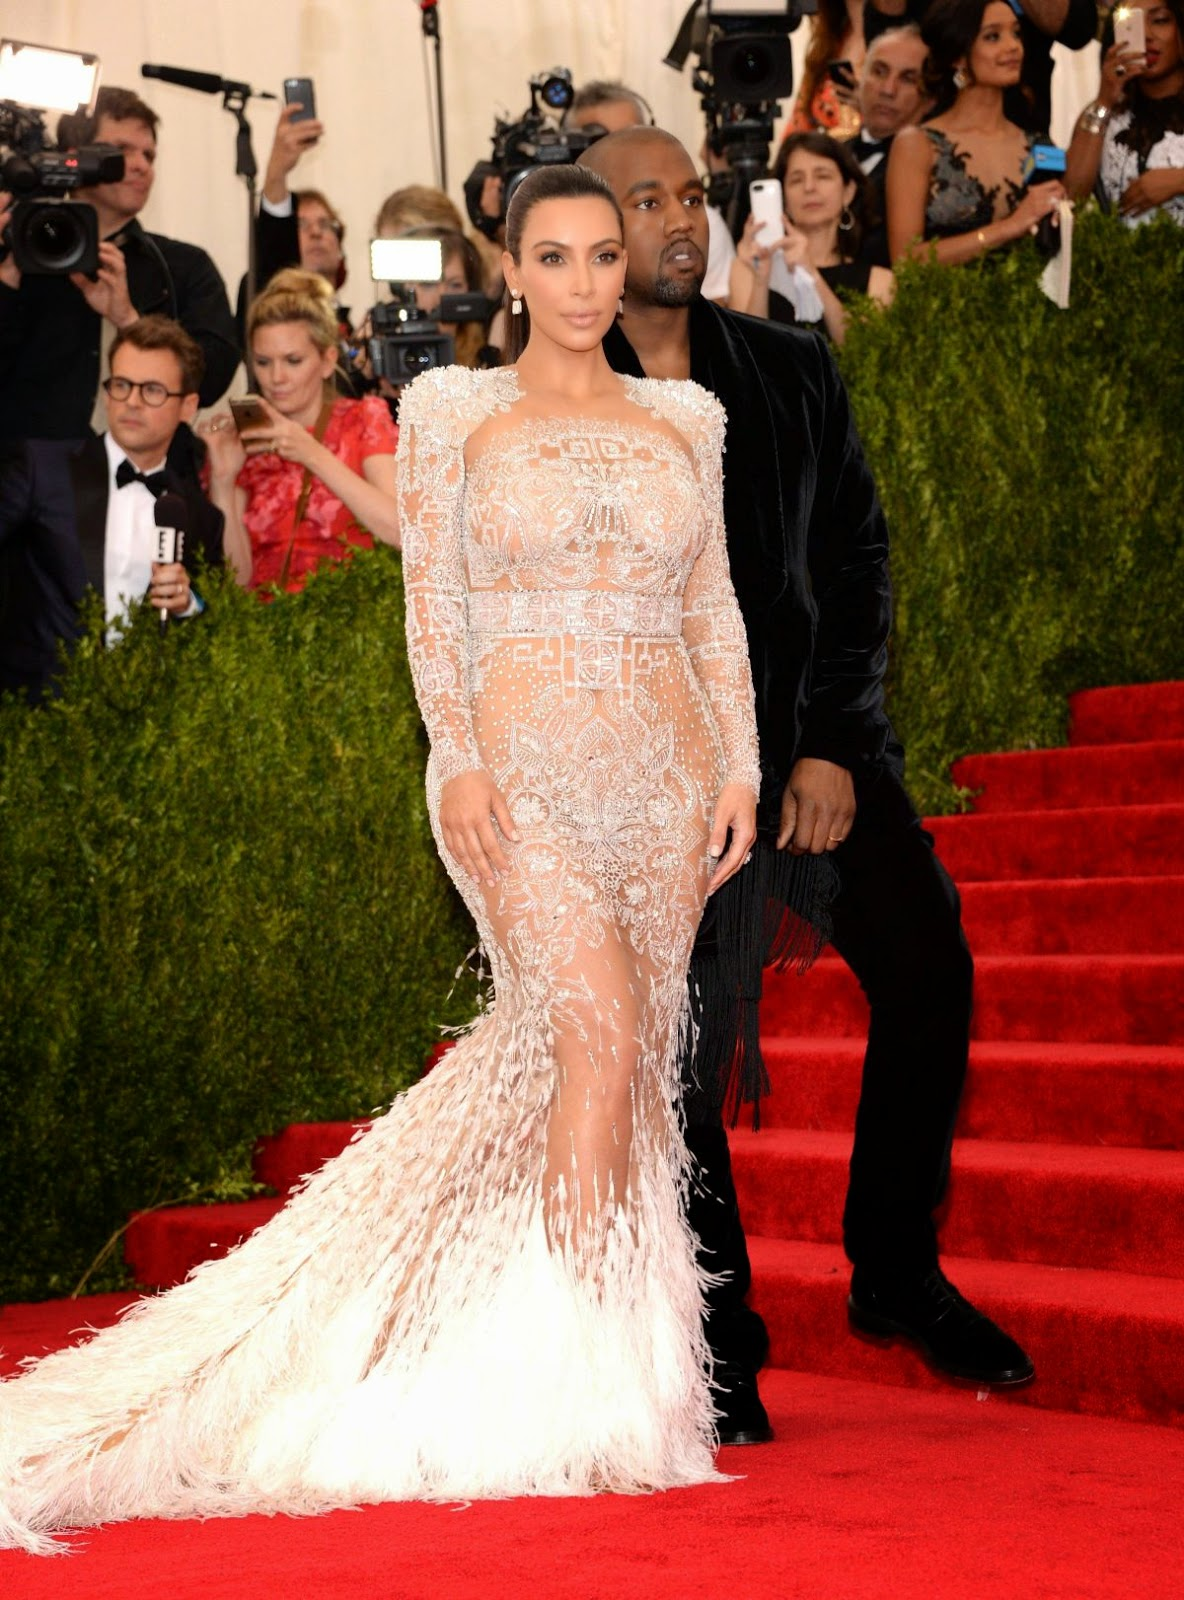 Singer, Television Personality, Socialite, Model @ Kim Kardashian At Met Gala 2015 In New York